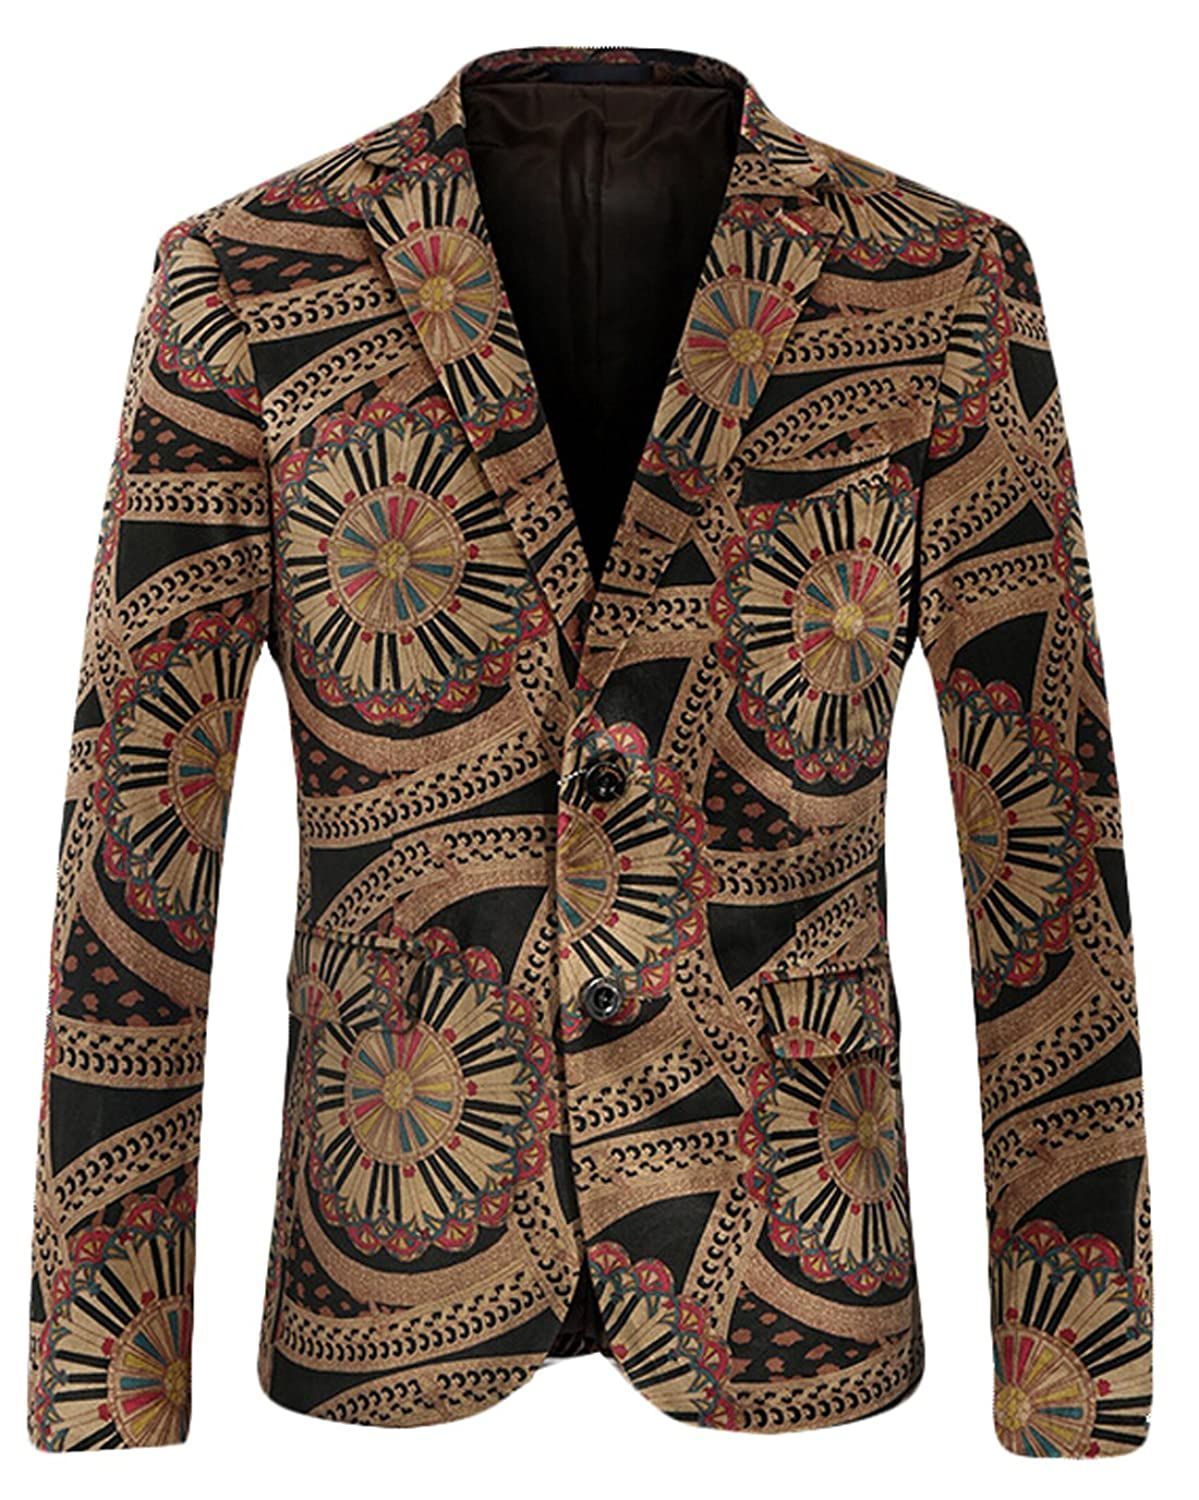 Acquaa Mens Button Floral Printed Playboy Career Blazer Jacket